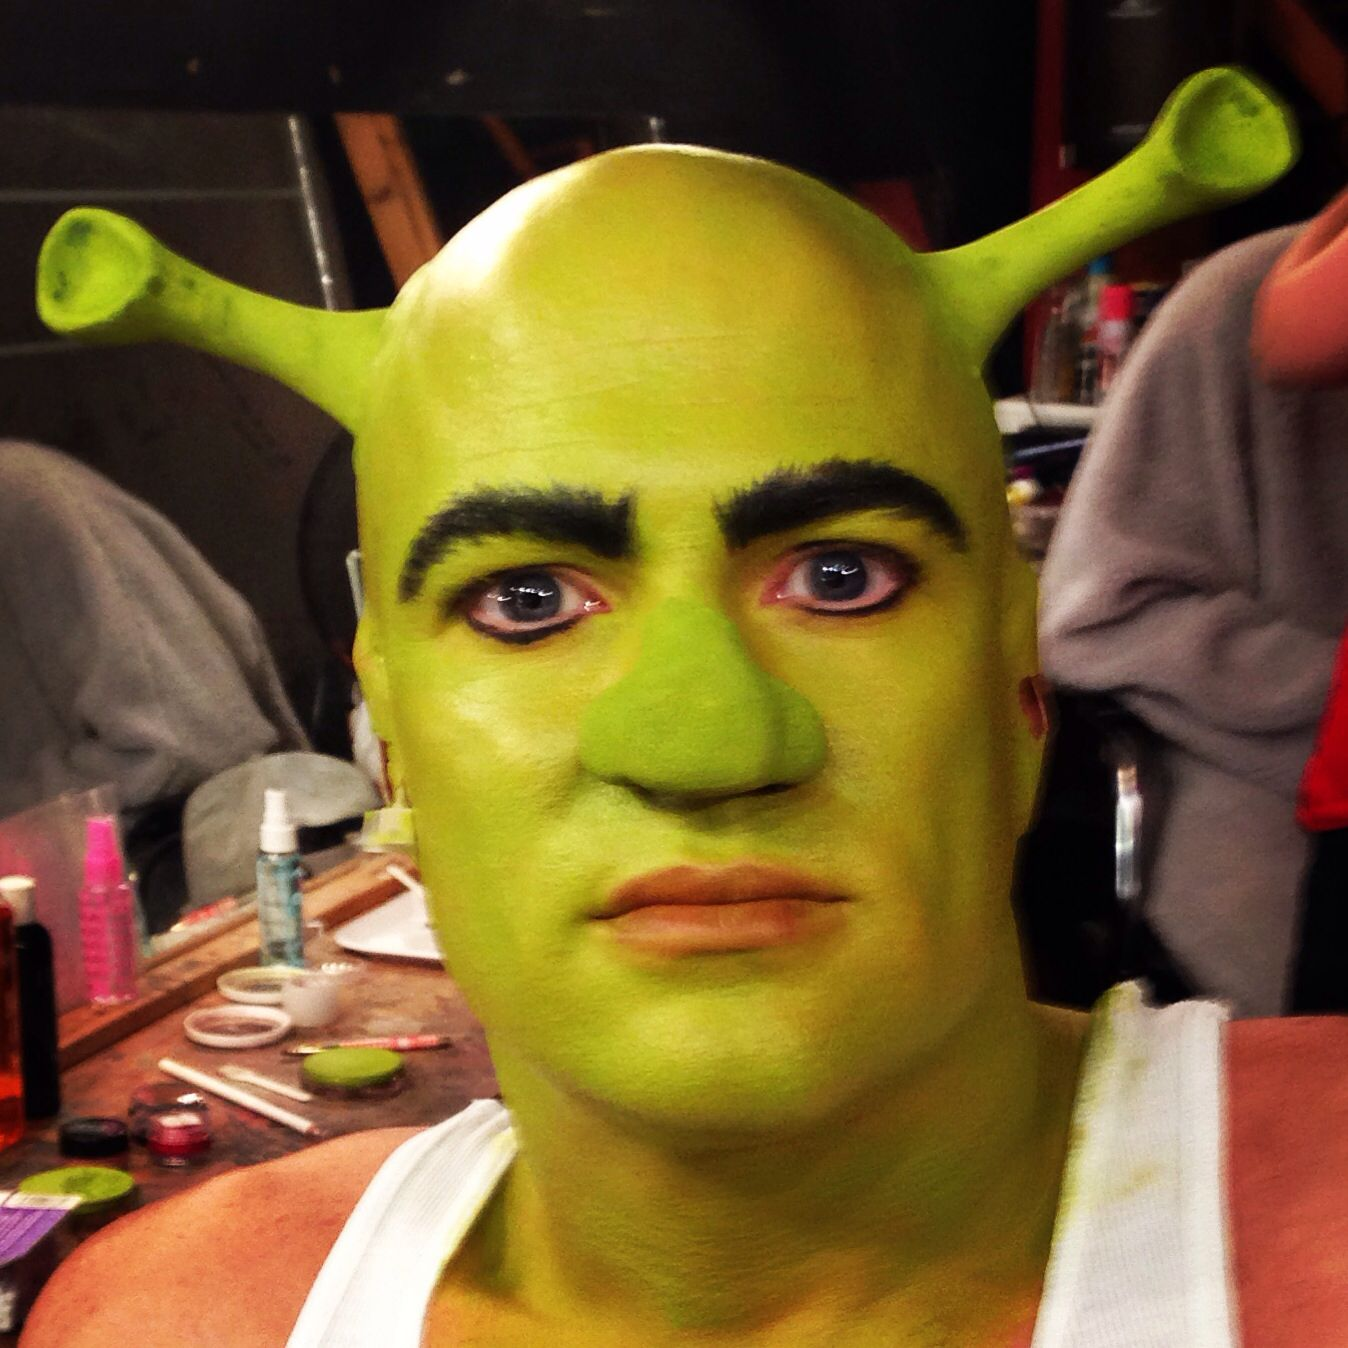 Shrek makeup | Fasnet in 2018 | Pinterest | Kostüm, Shrek kostüm und ...